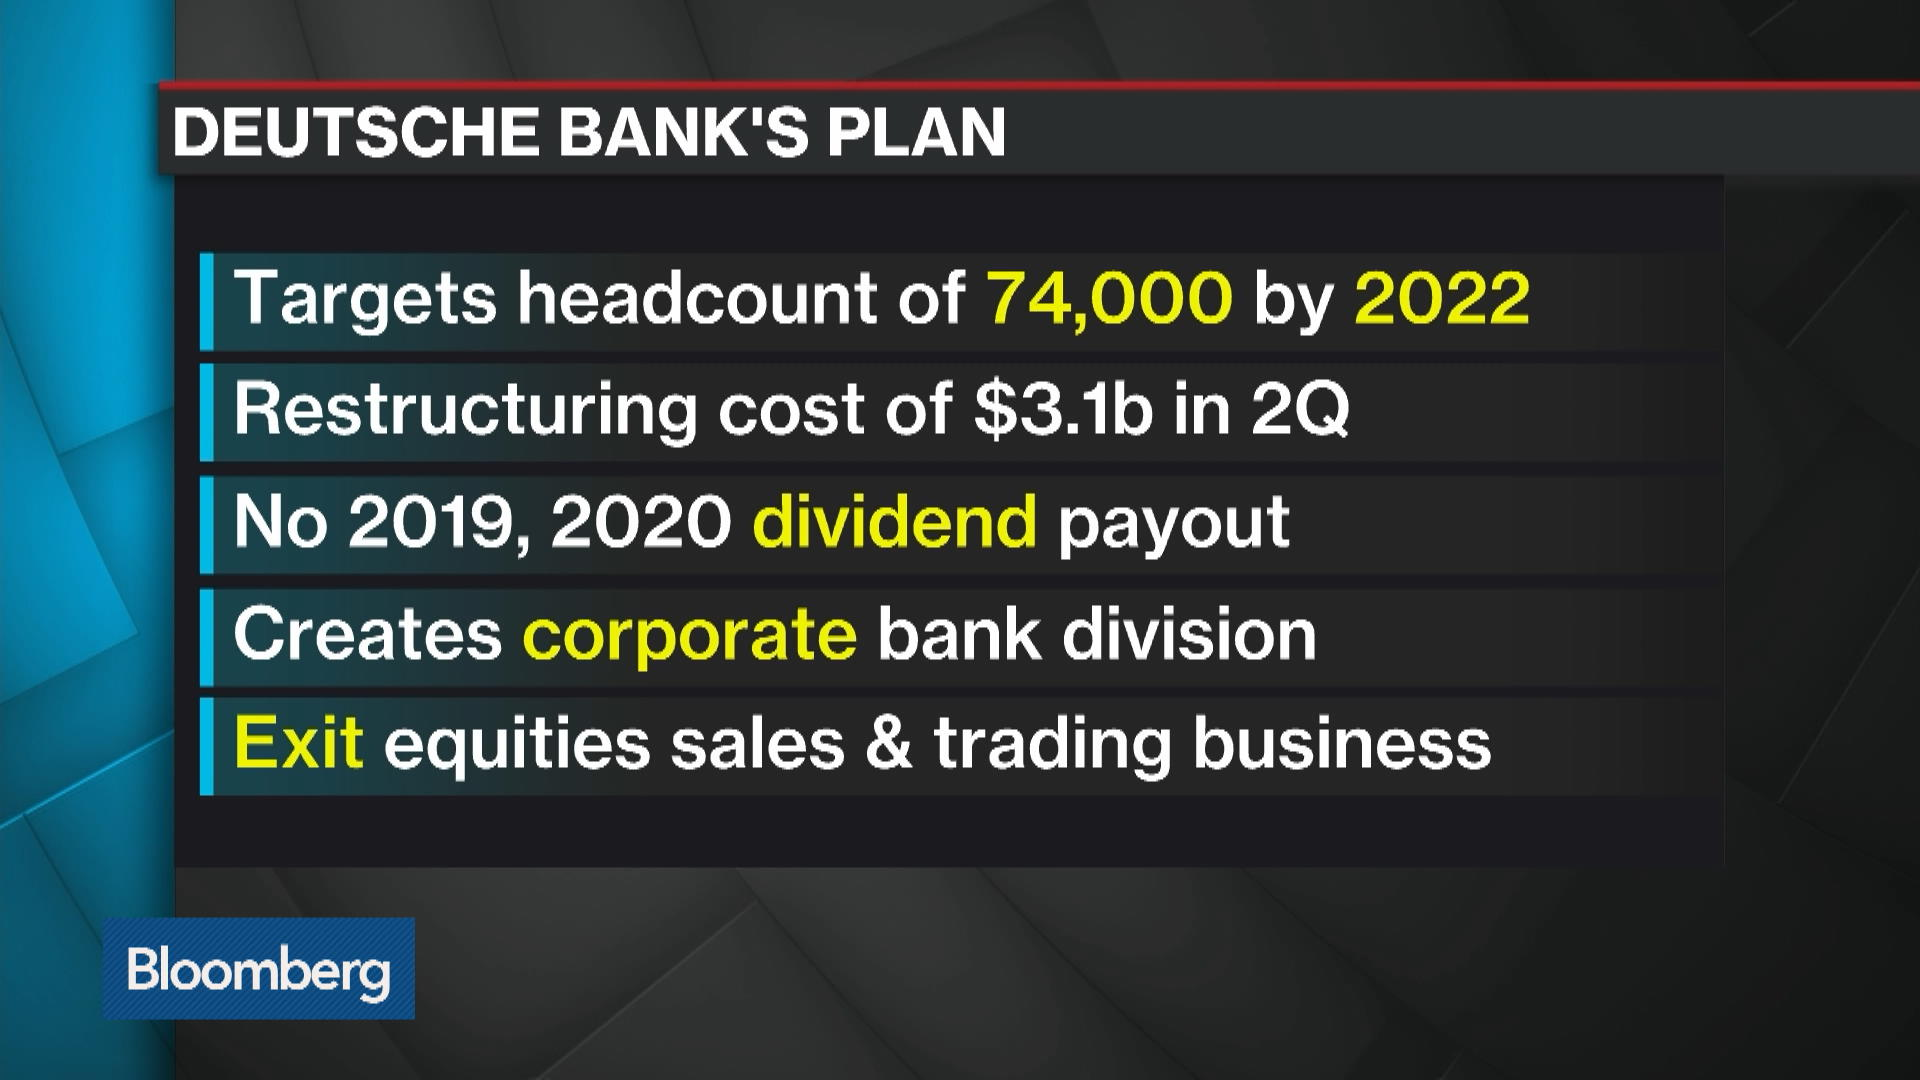 Deutsche Bank Cuts Leave Thousands Chasing Limited Openings